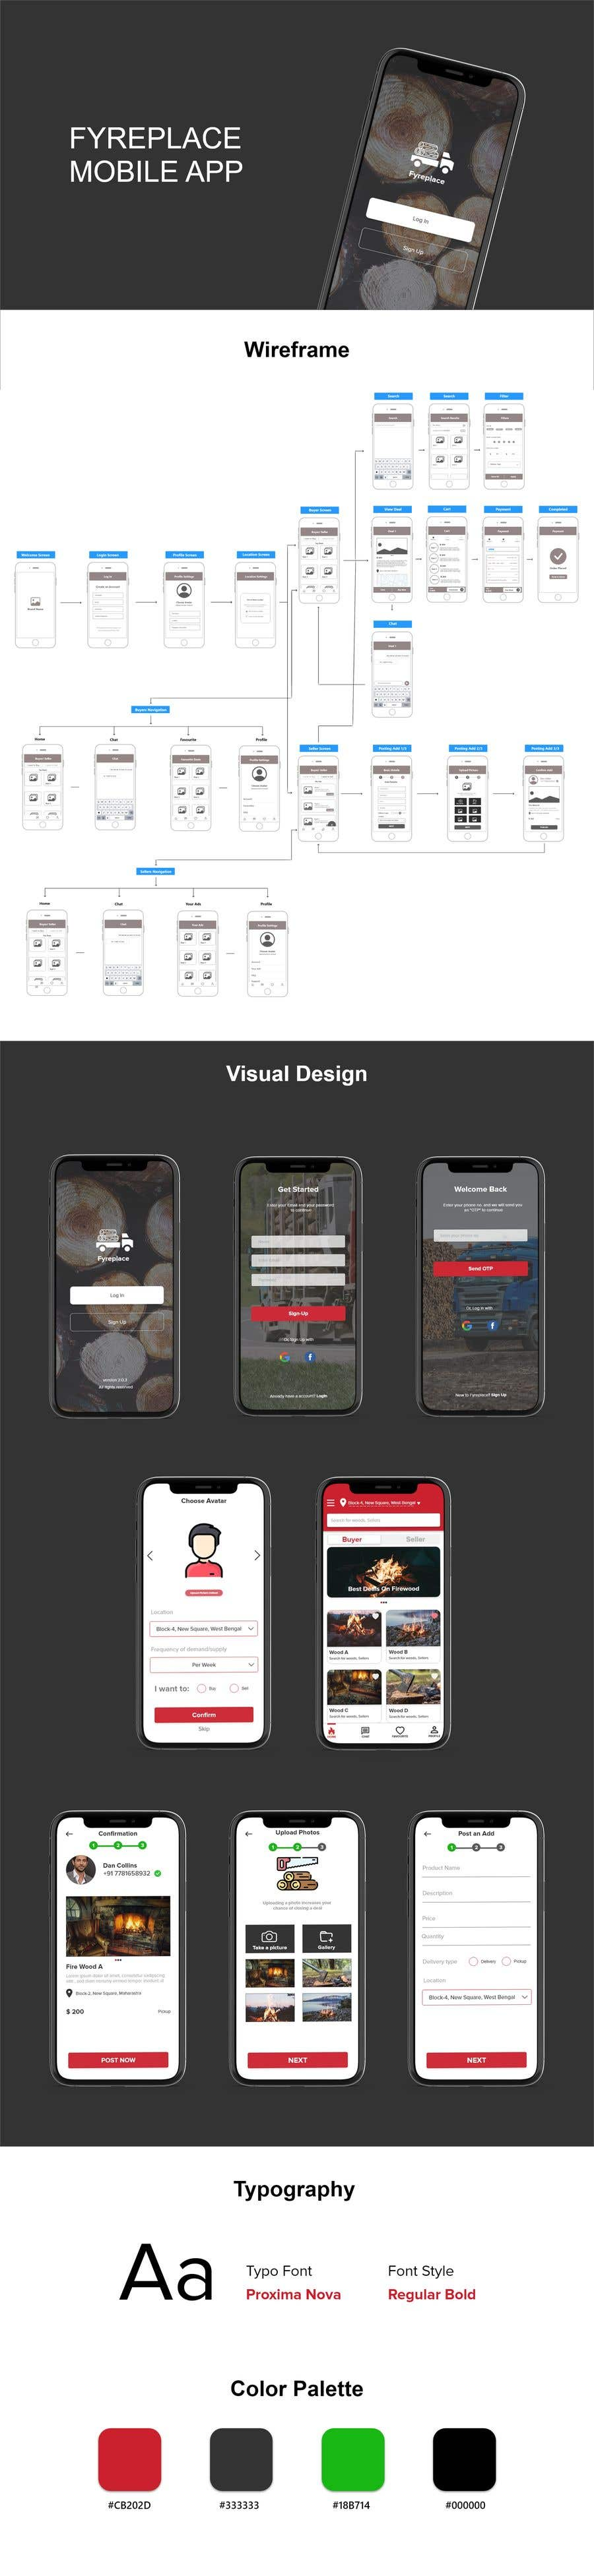 Contest Entry #                                        43                                      for                                         Design a Mobile App Screen Layout Plan